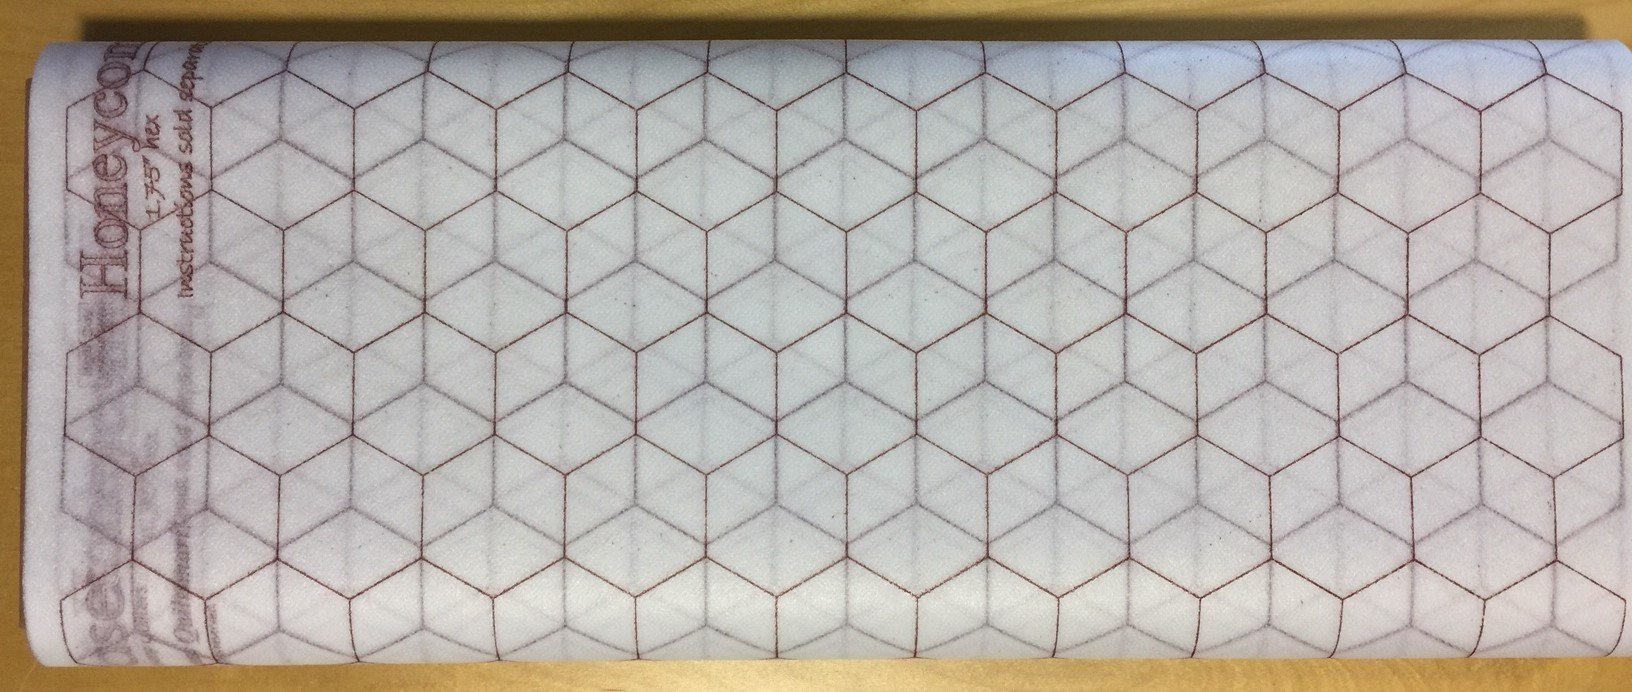 Honeycomb Hex Interfacing 25-panel Bolt